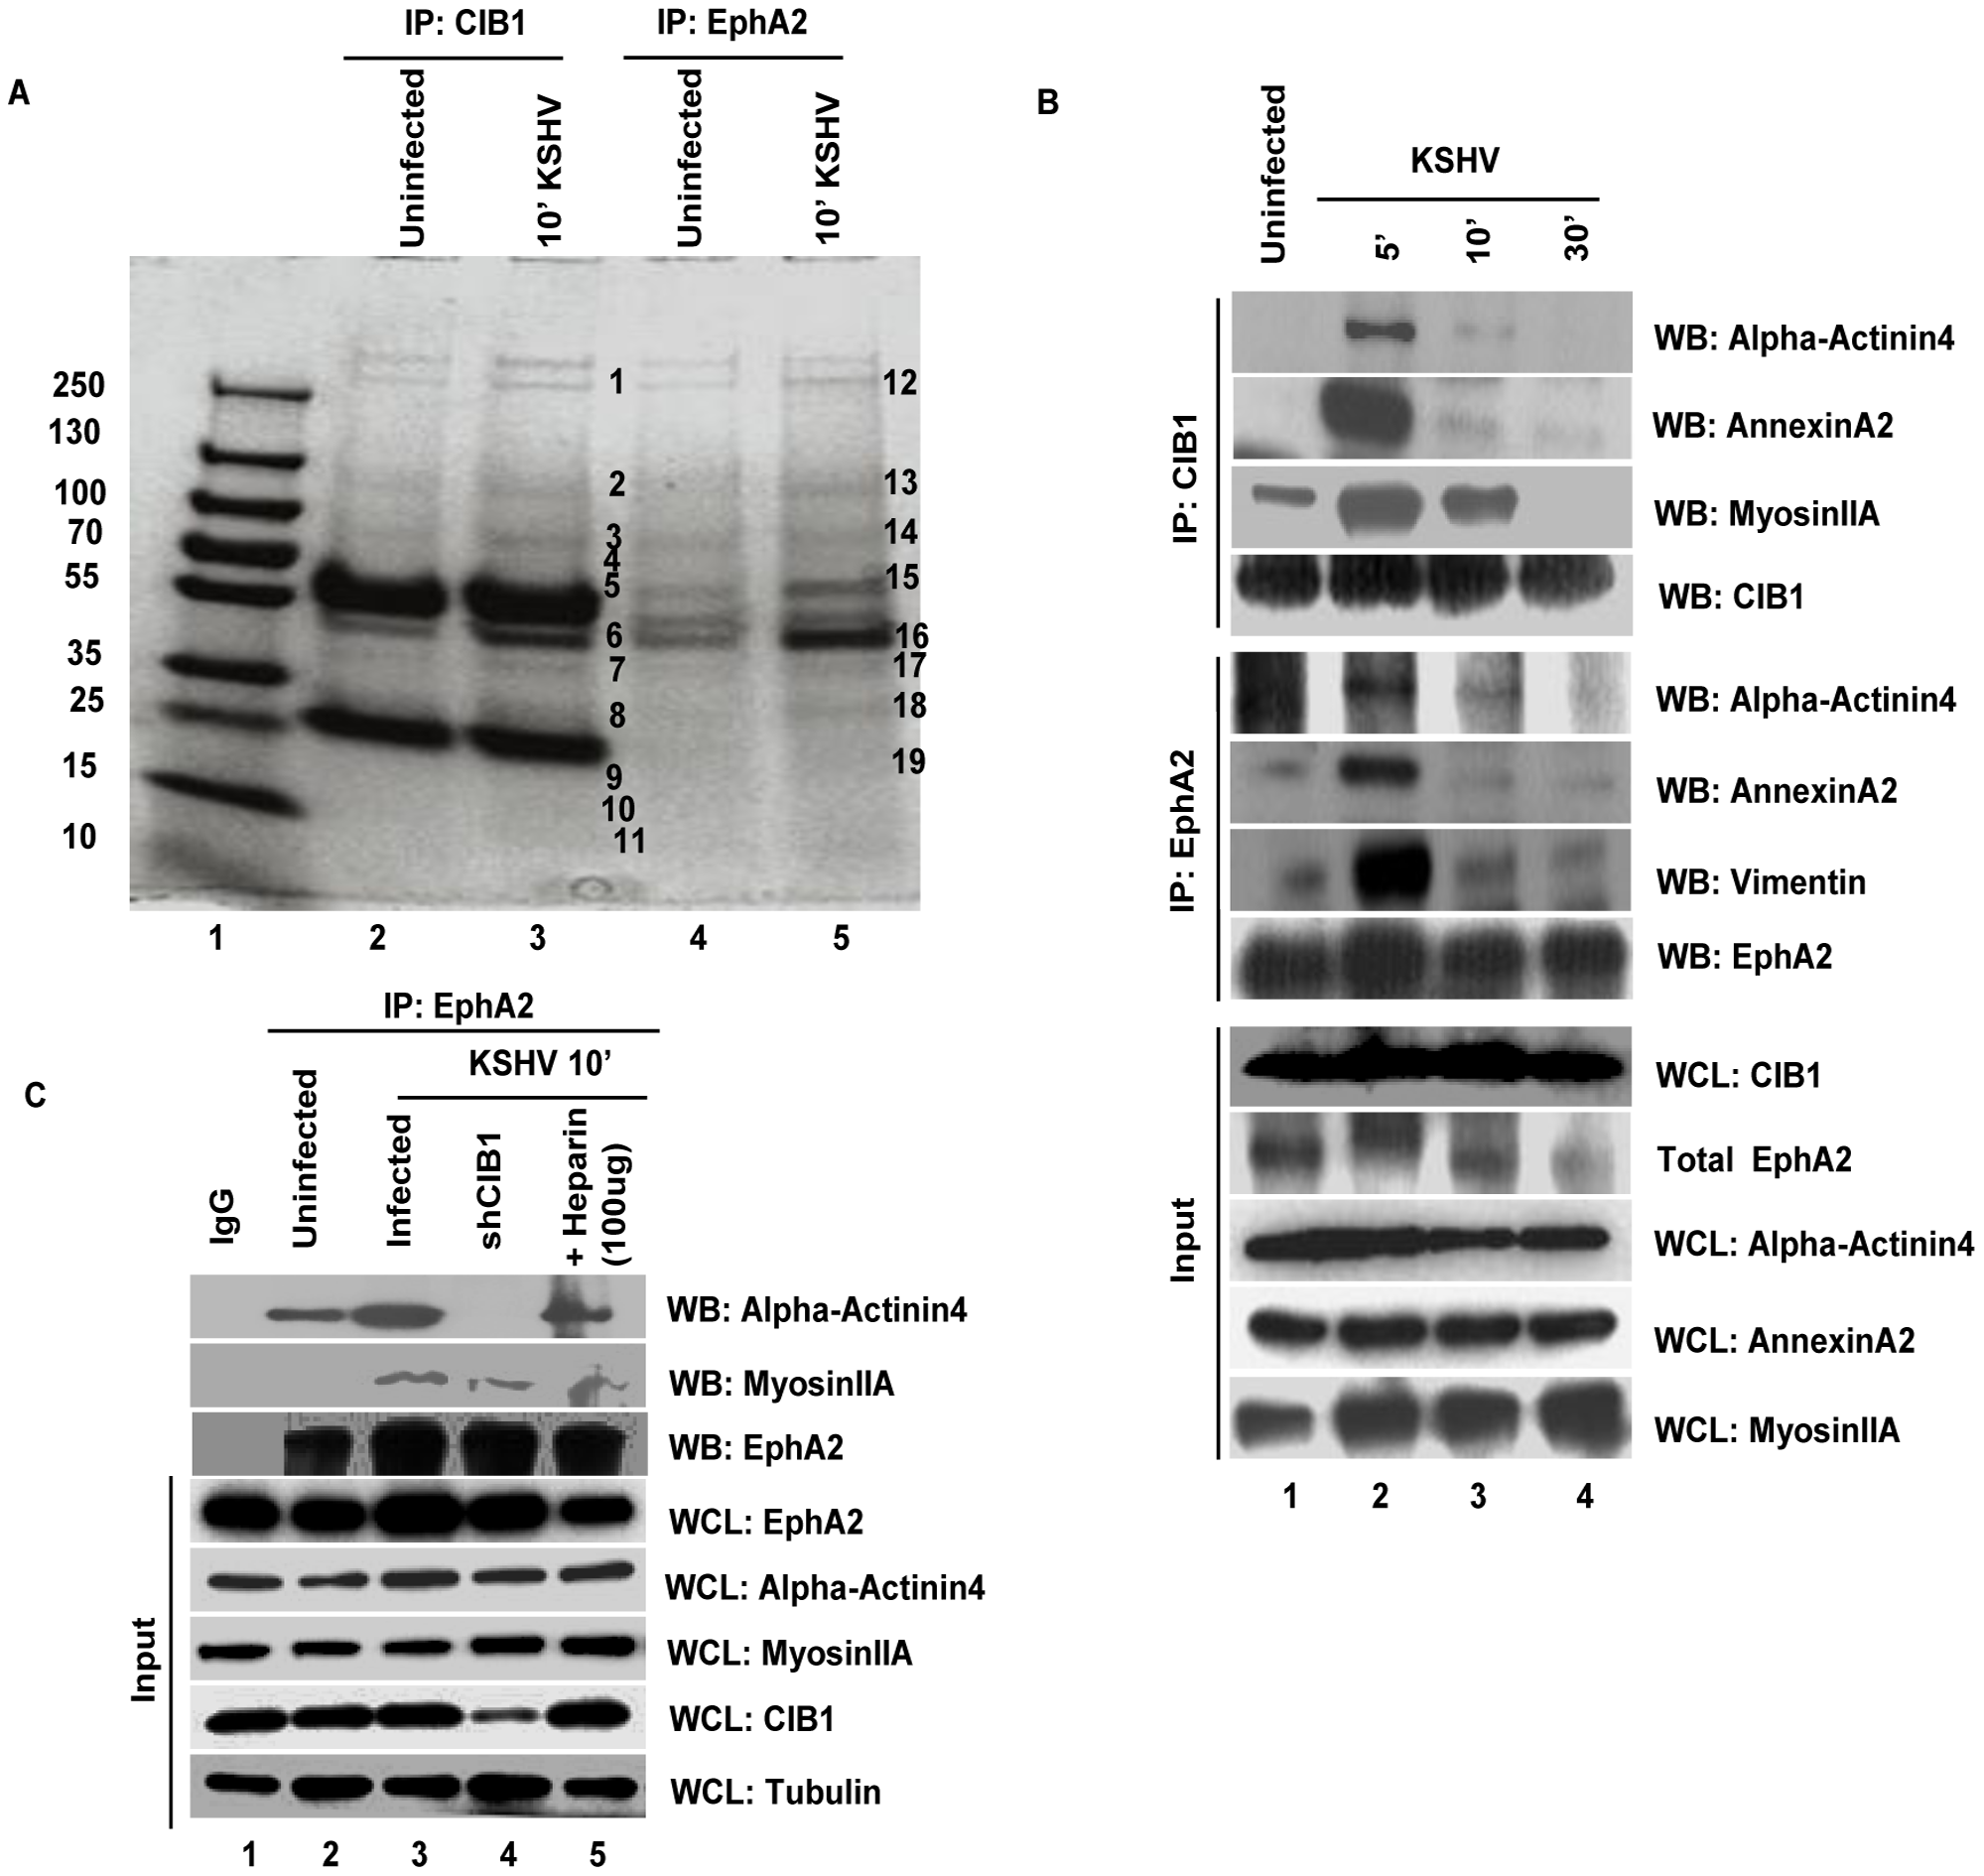 Mass spectrometric analysis of immunoprecipitates of anti-CIB1 and EphA2 antibodies with lysates from KSHV infected HMVEC-d cells.